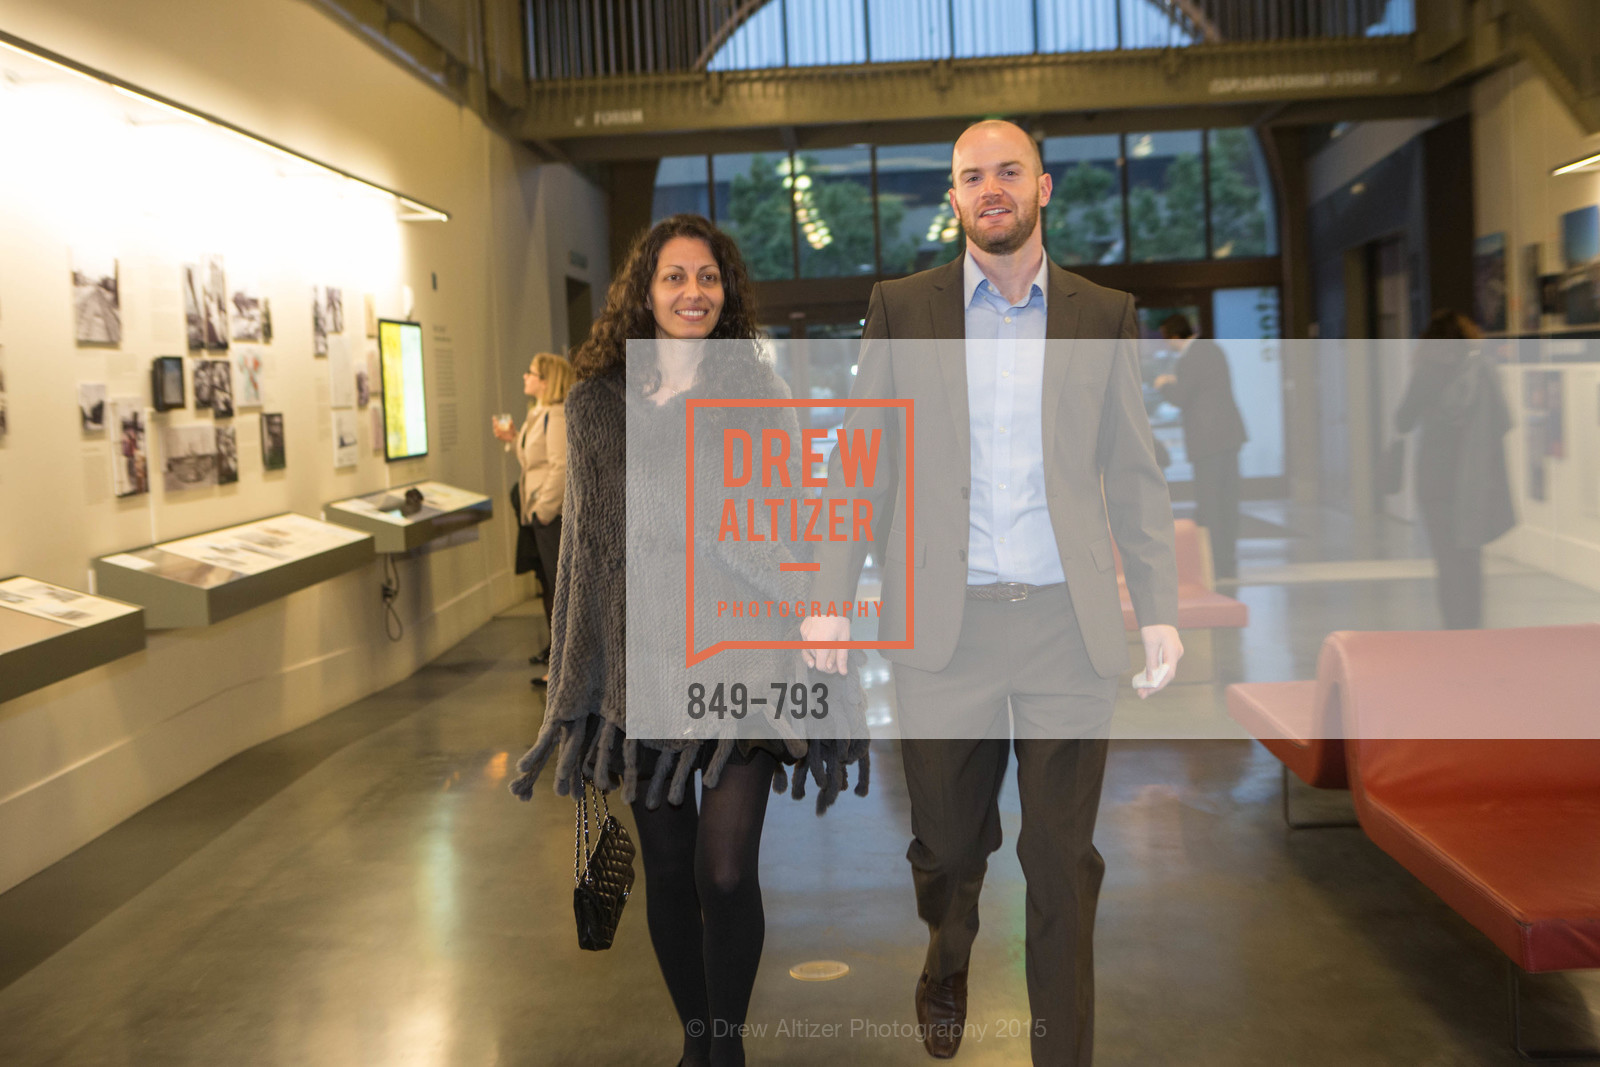 Donatella Taurasi, Christopher Cameron, SF BRAVO CLUB Sneak Peek at the EXPLORATORIUM, US, April 22nd, 2015,Drew Altizer, Drew Altizer Photography, full-service agency, private events, San Francisco photographer, photographer california